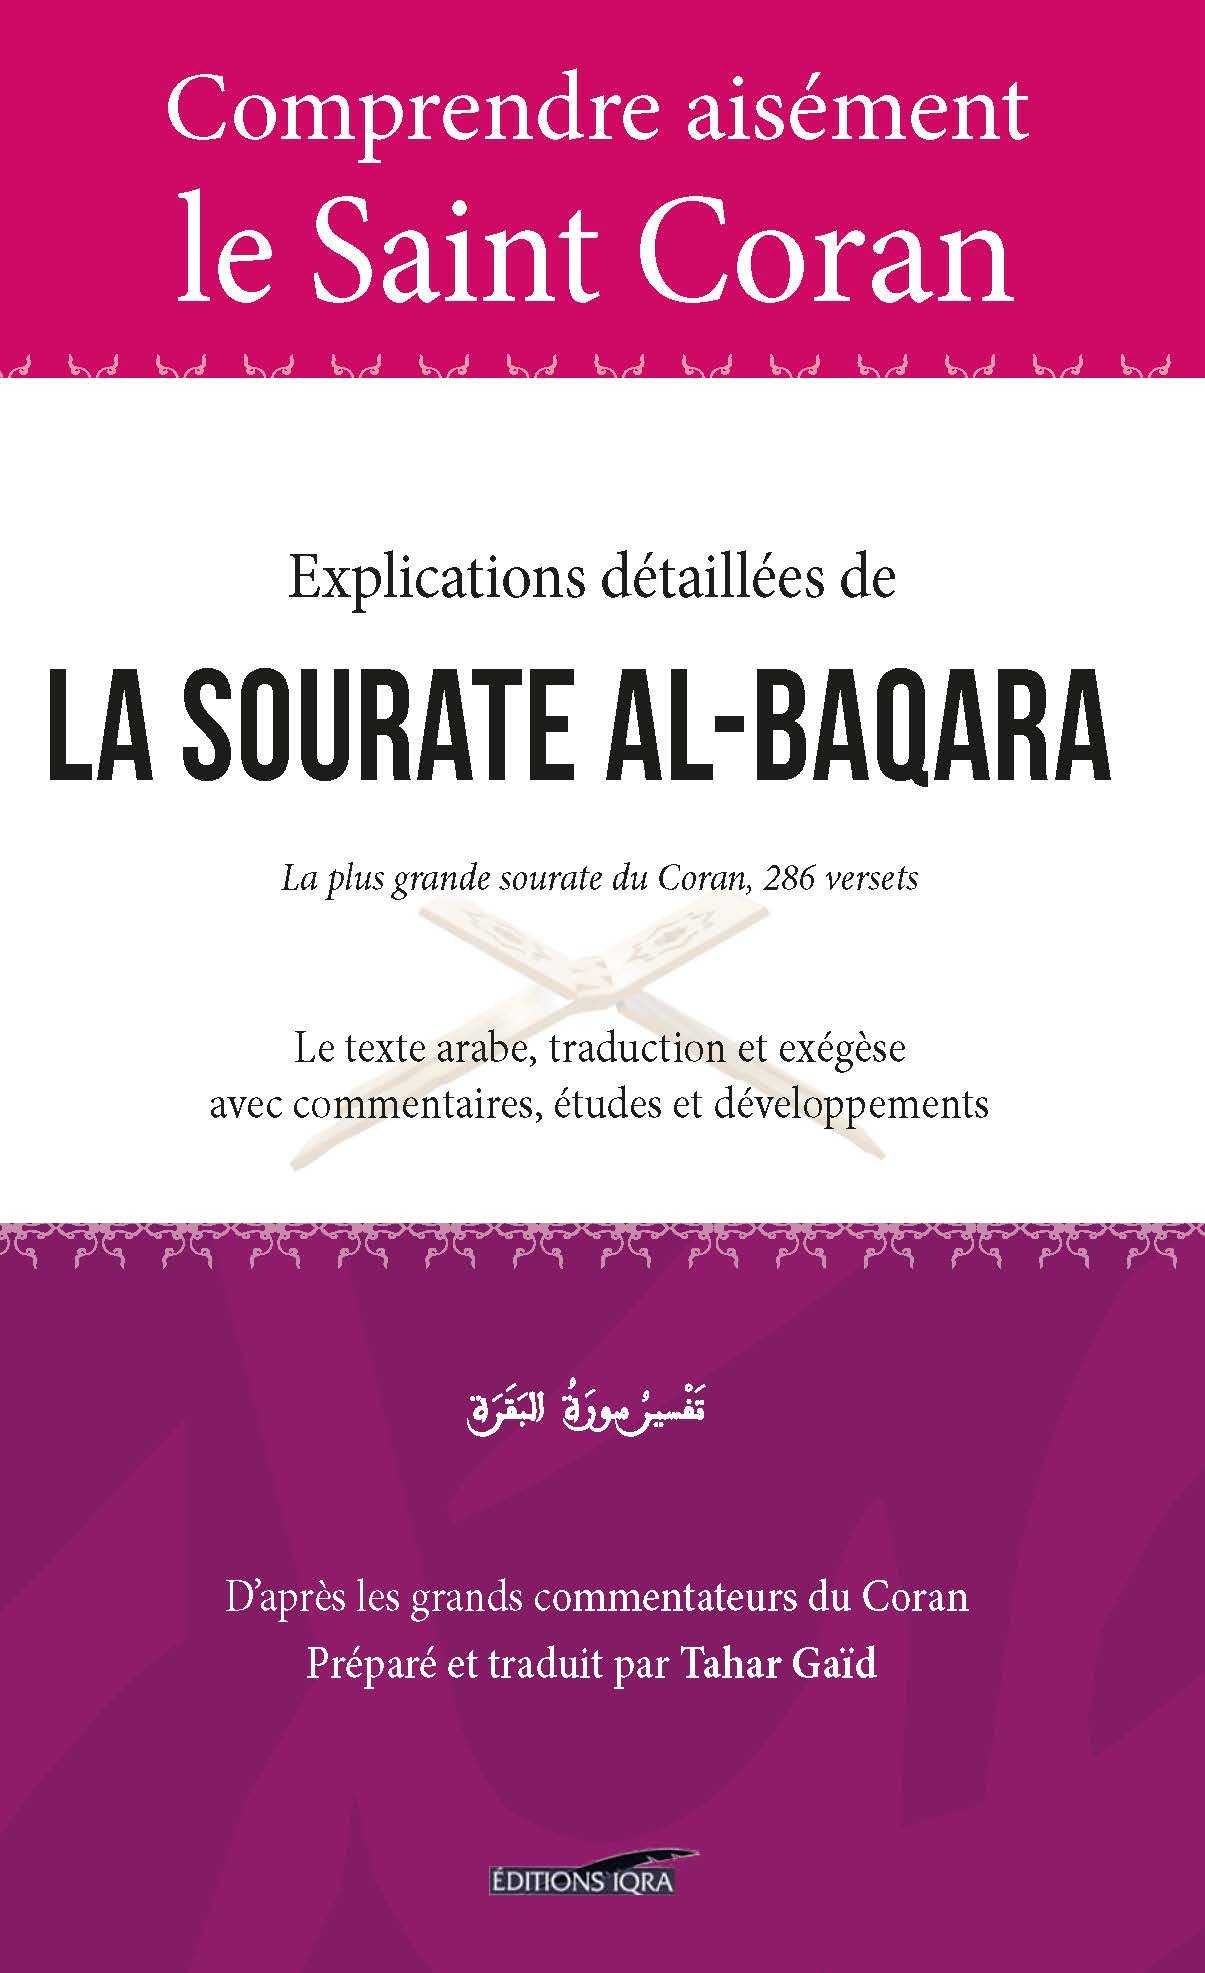 COMPRENDRE AISEMENT LE SAINT CORAN : EXPLICATIONS DETAILLEES DE LA SOURATE AL-BAQARA